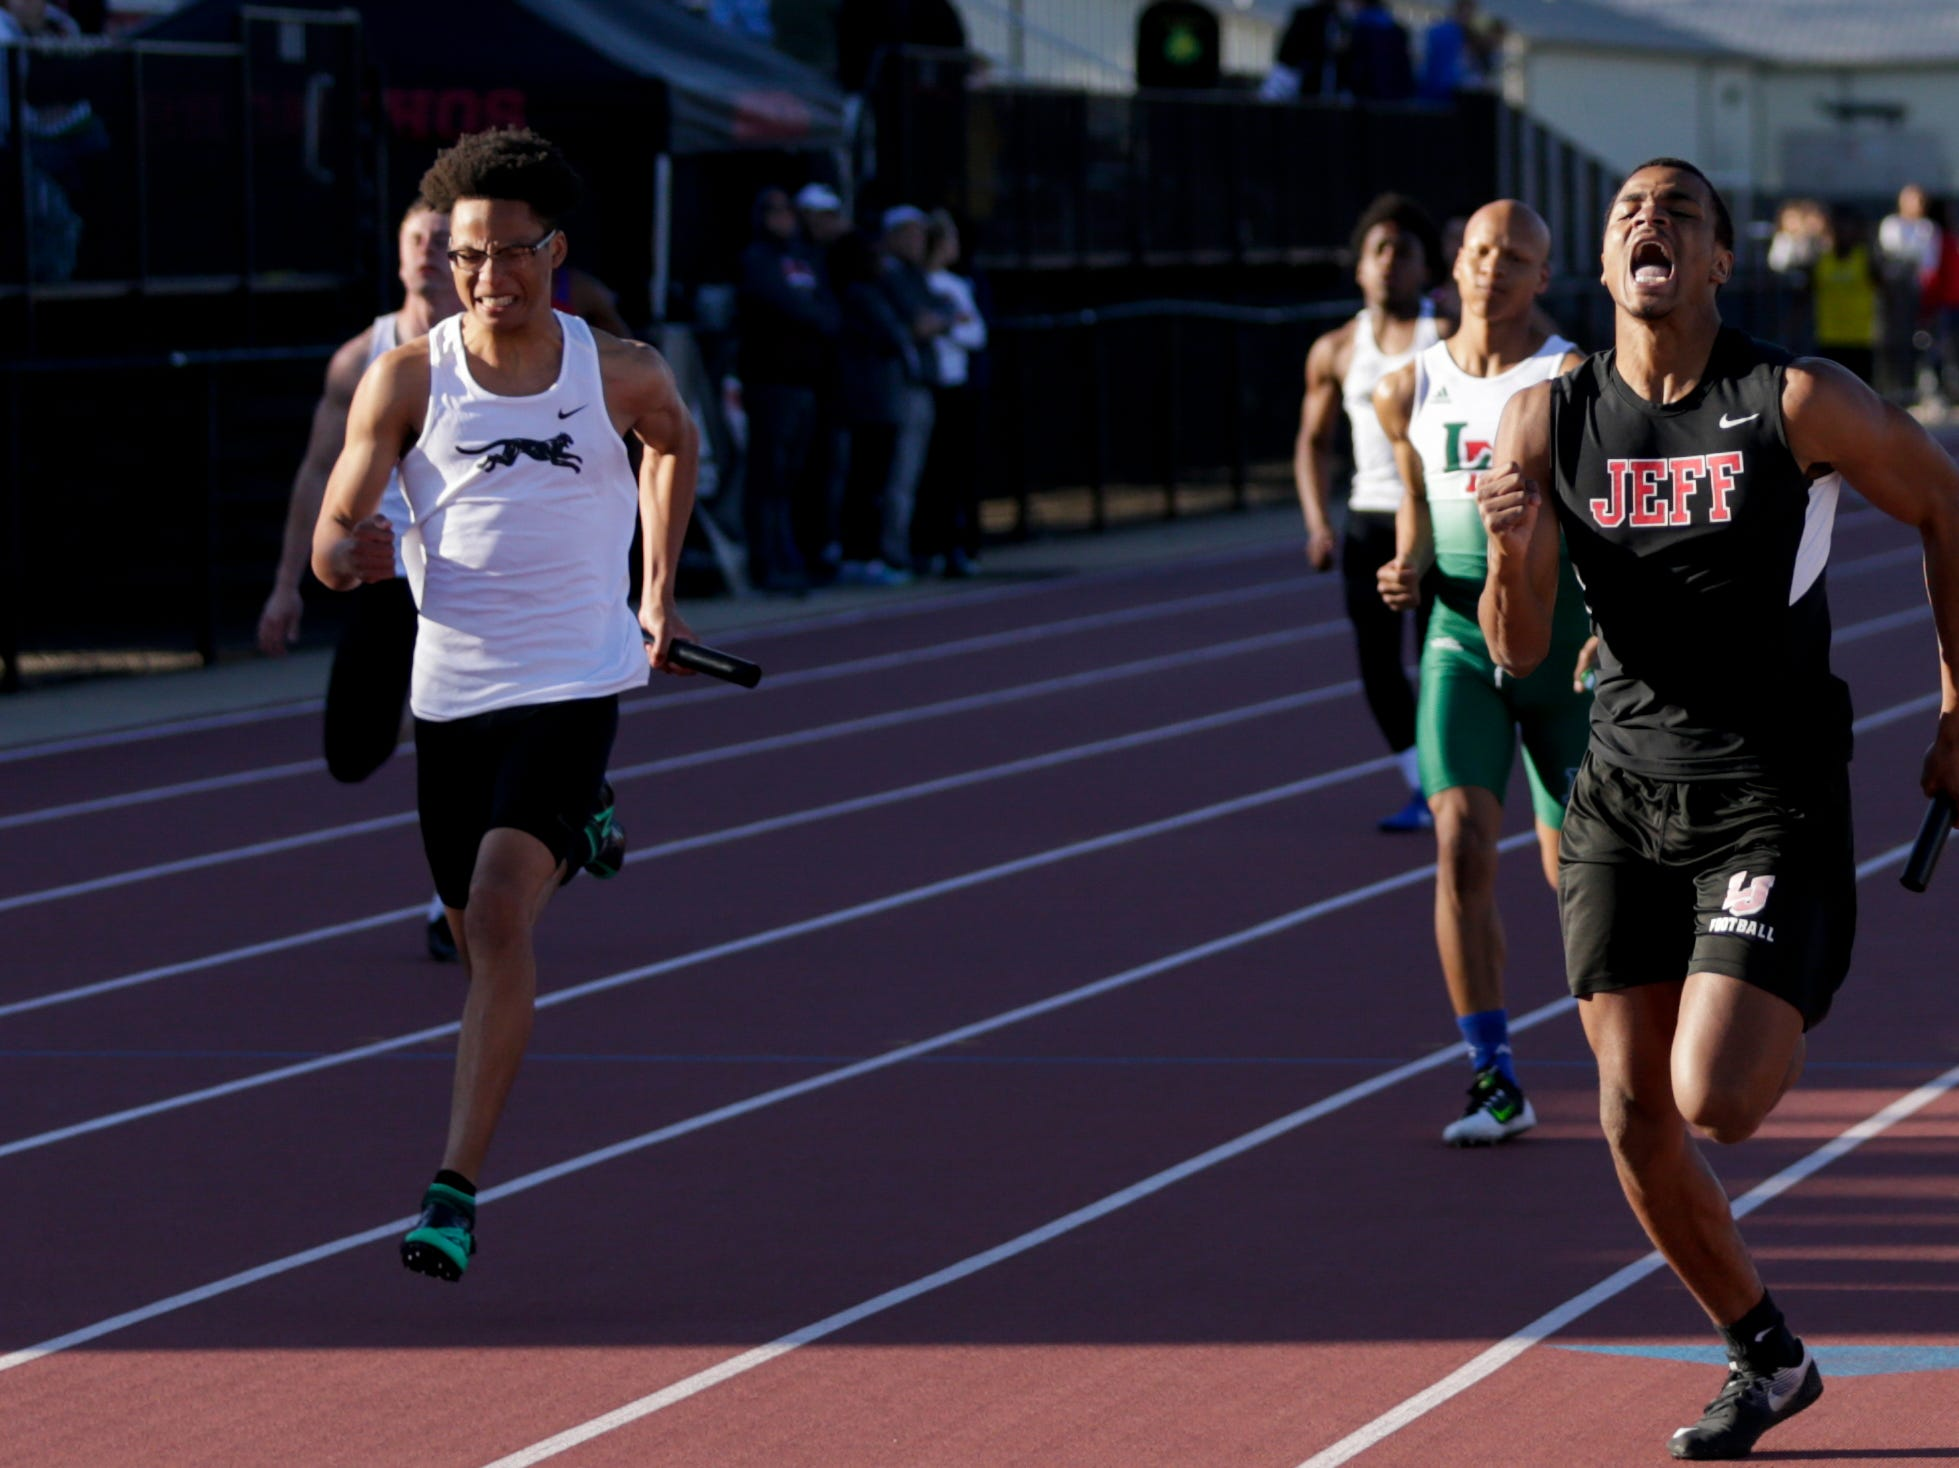 Lafayette Jeff's Derick Matthews competes in the men's 4x100 meter relay during the 2019 Sprinters Showcase, Friday, April 12, 2019, at Lafayette Jeff High School in Lafayette.